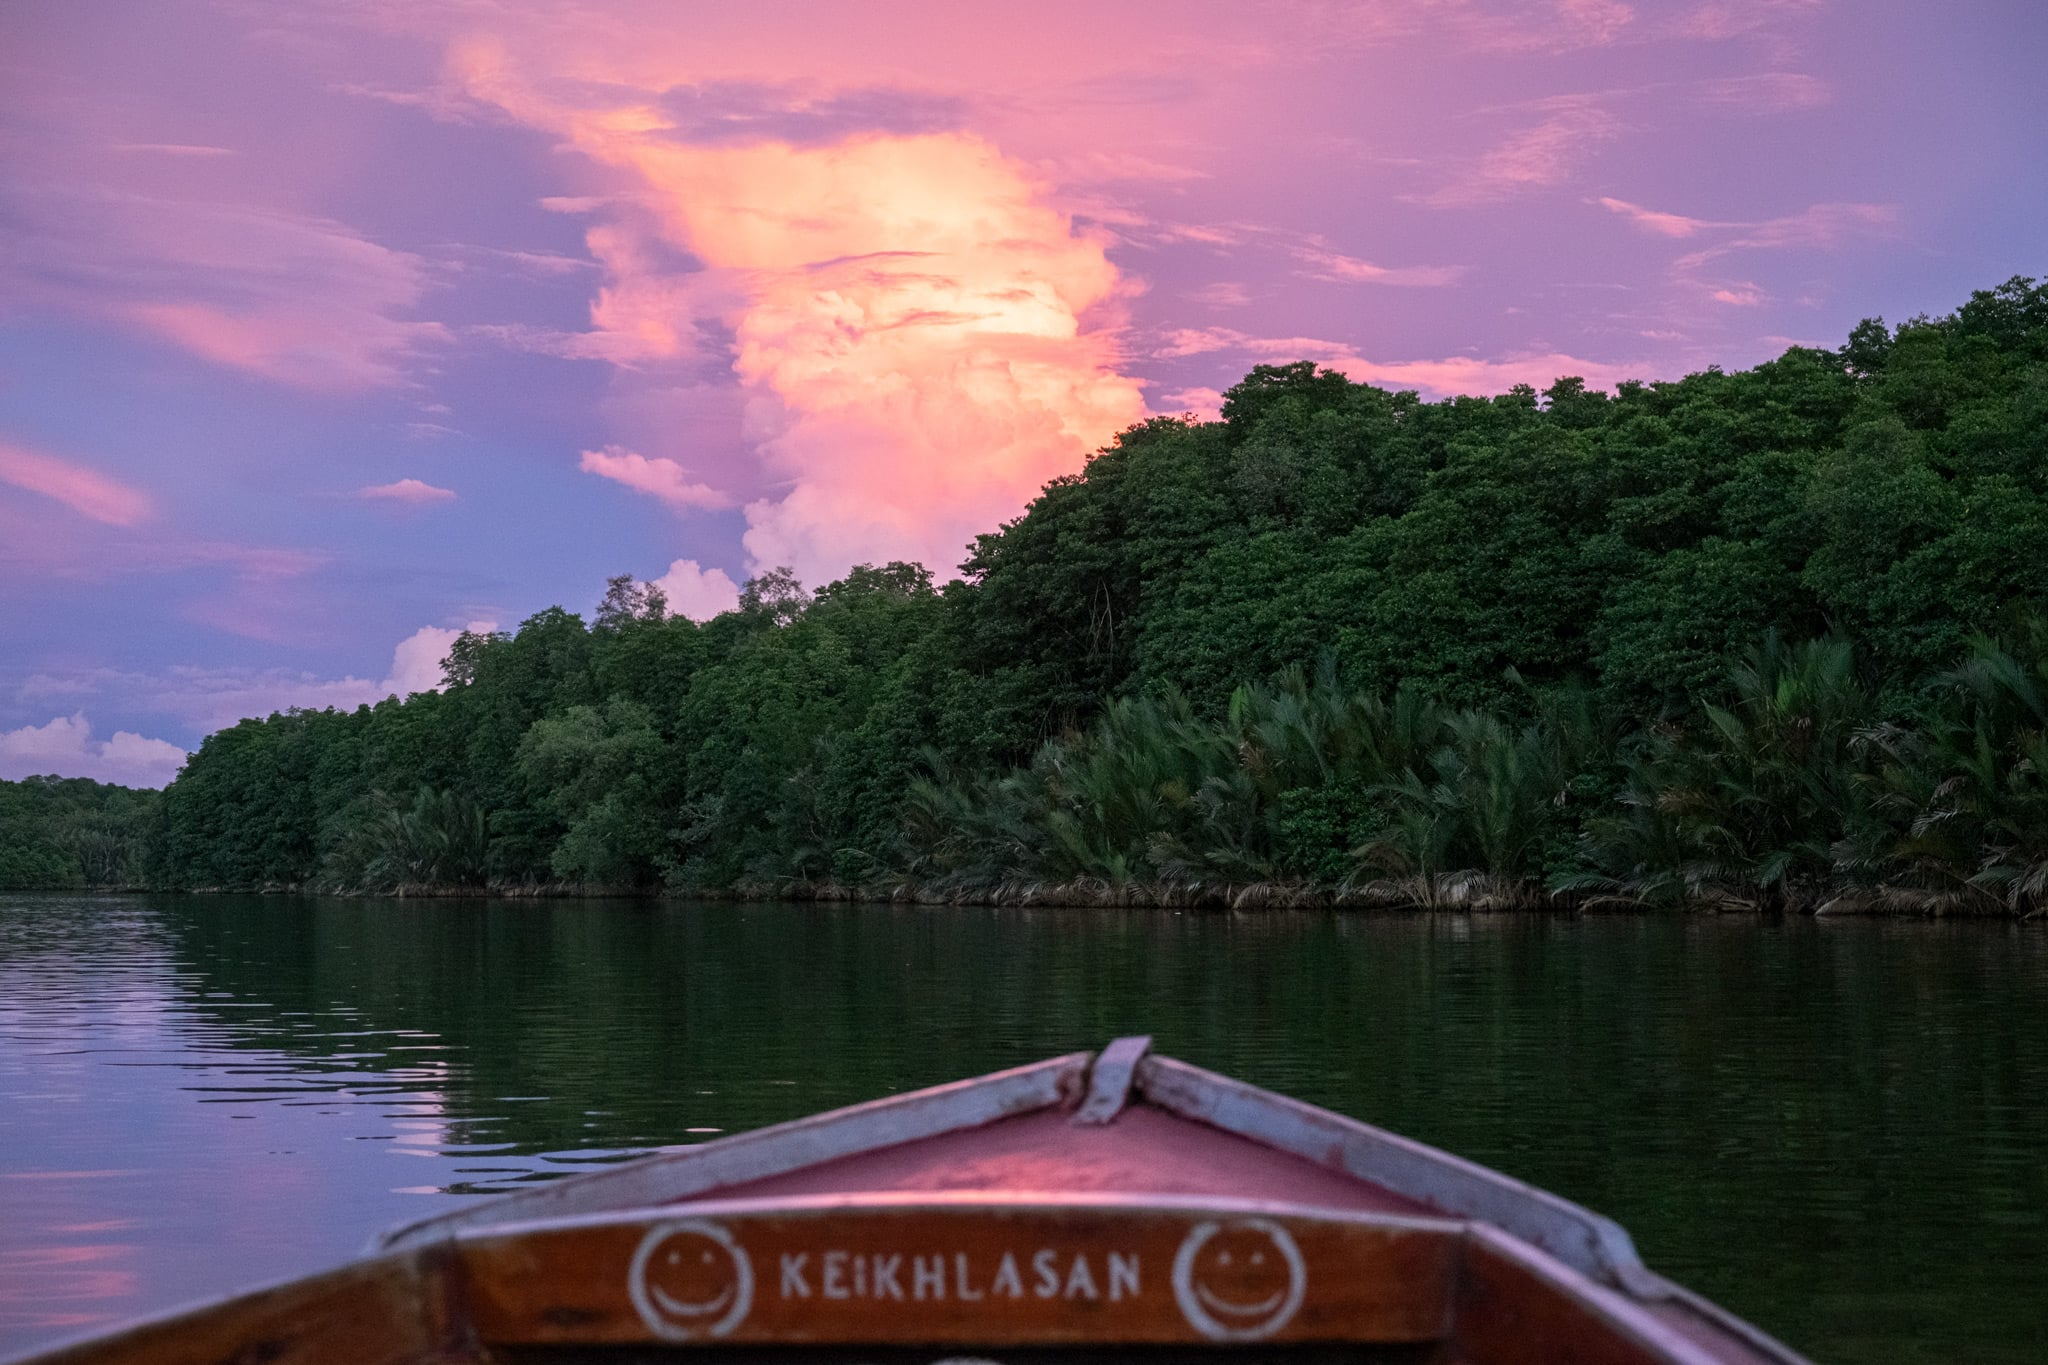 Beautiful sunset over the Brunei River by boat on the way back to the capital Bandar Seri Begawan, Brunei.